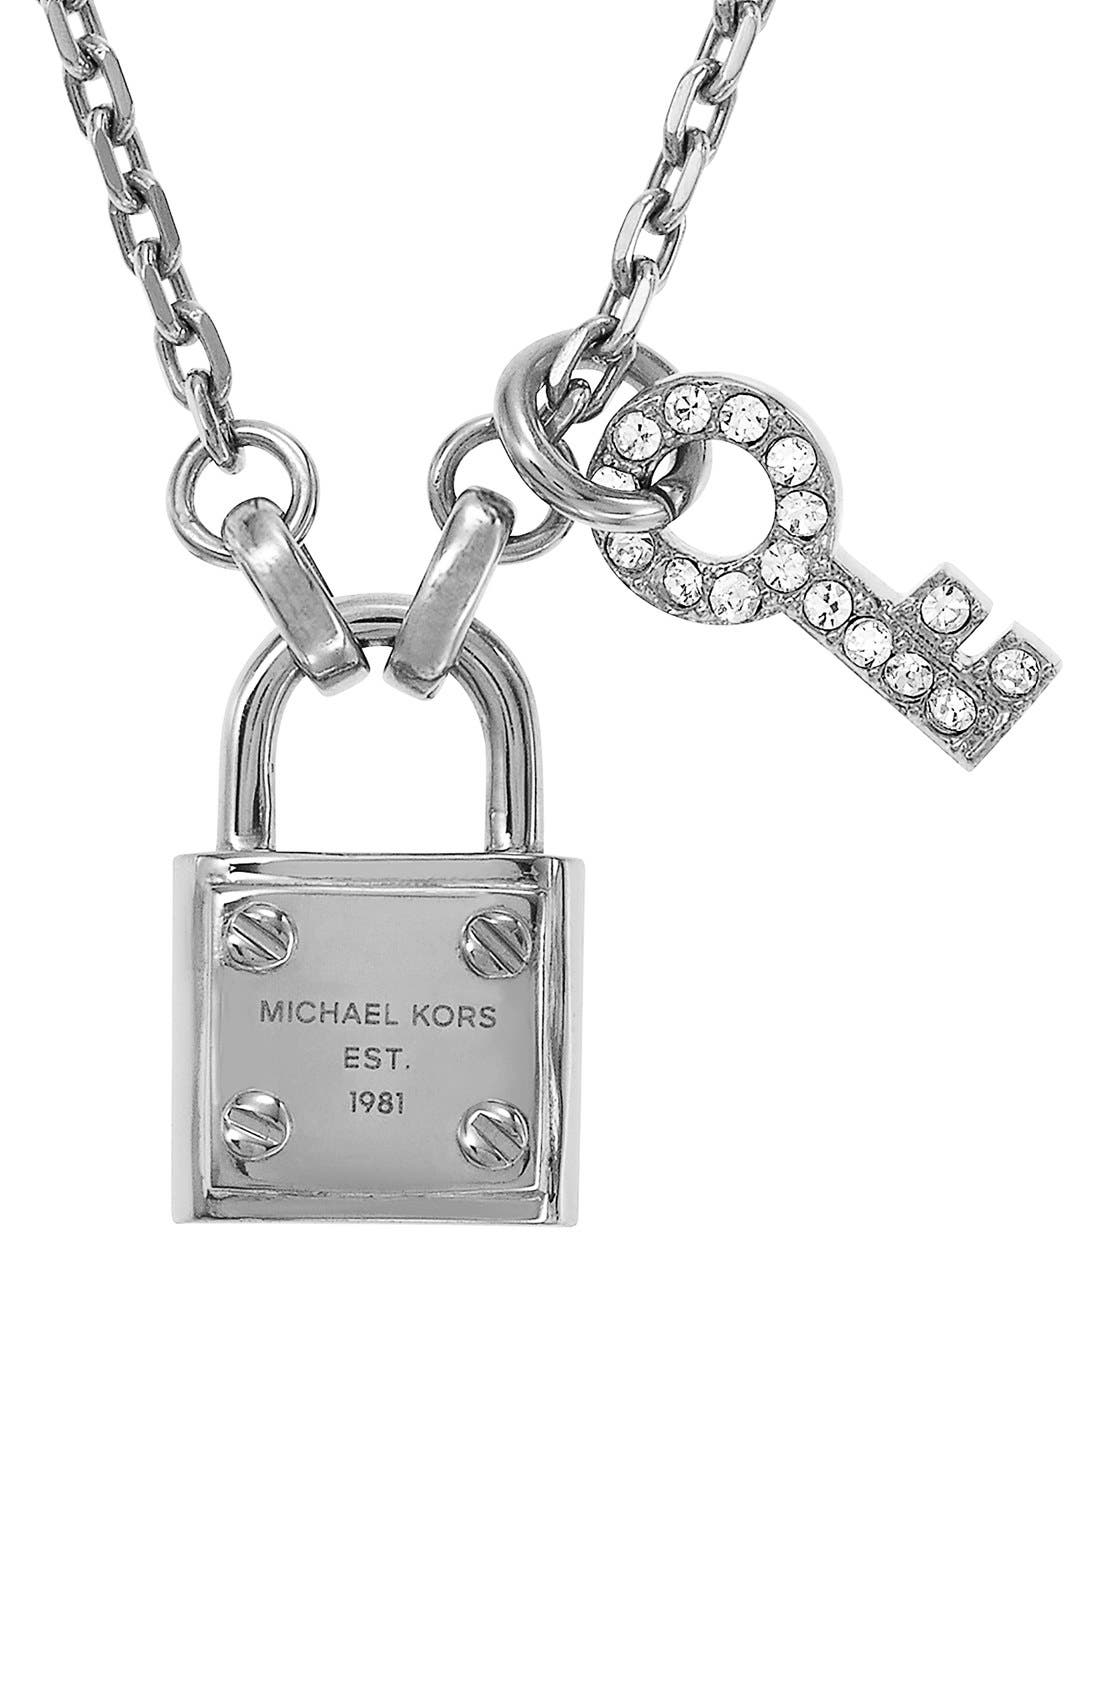 Alternate Image 1 Selected - Michael Kors 'Brilliance' Lock & Key Charm Necklace